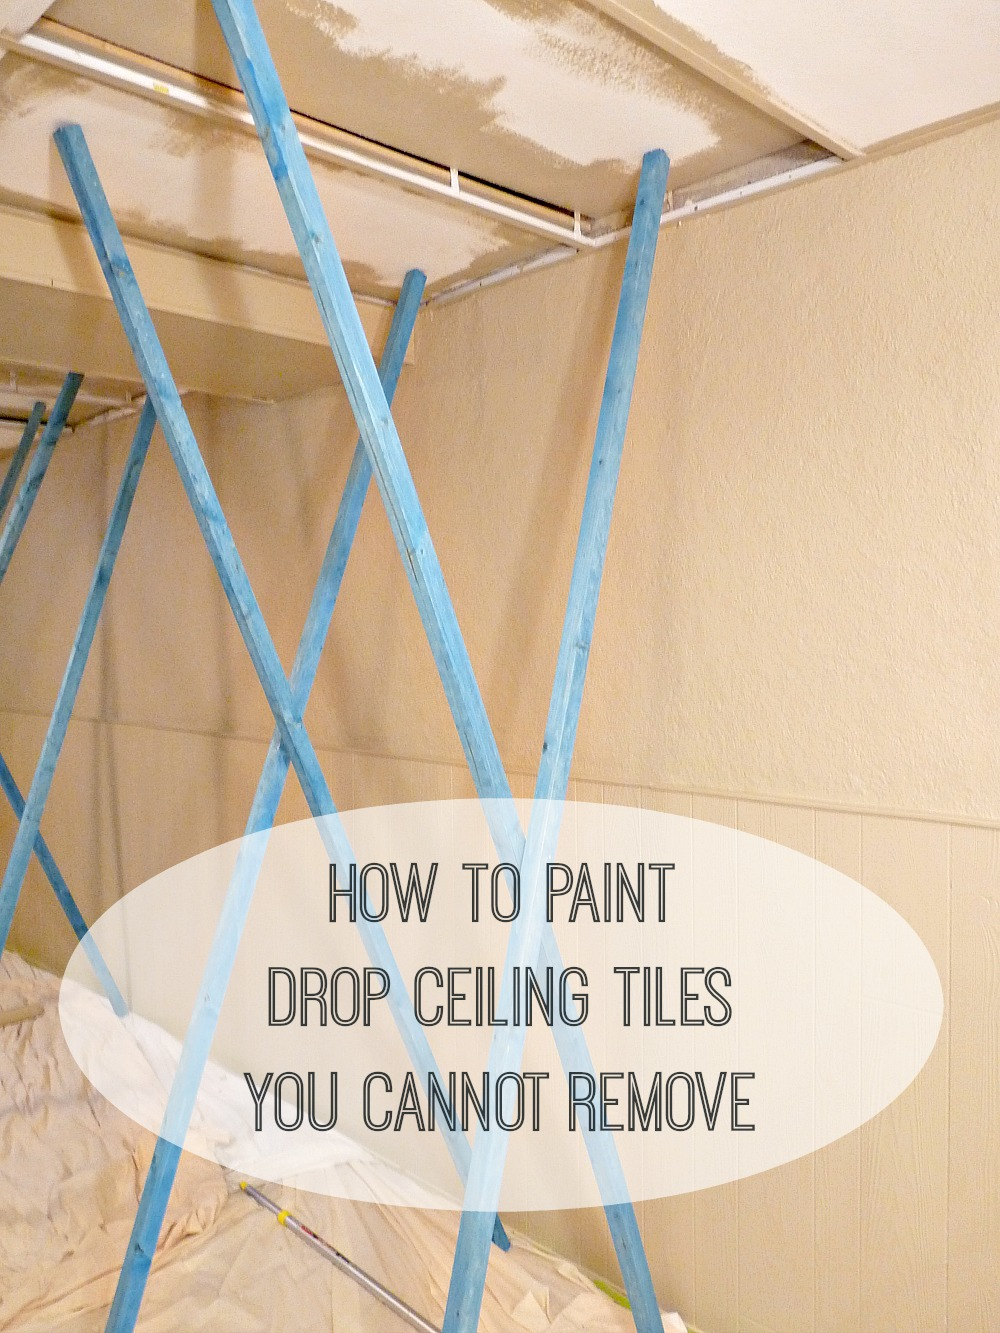 Basement update how to paint drop ceilings you cannot remove quick tip for painting ceiling tiles you cannot remove dailygadgetfo Image collections